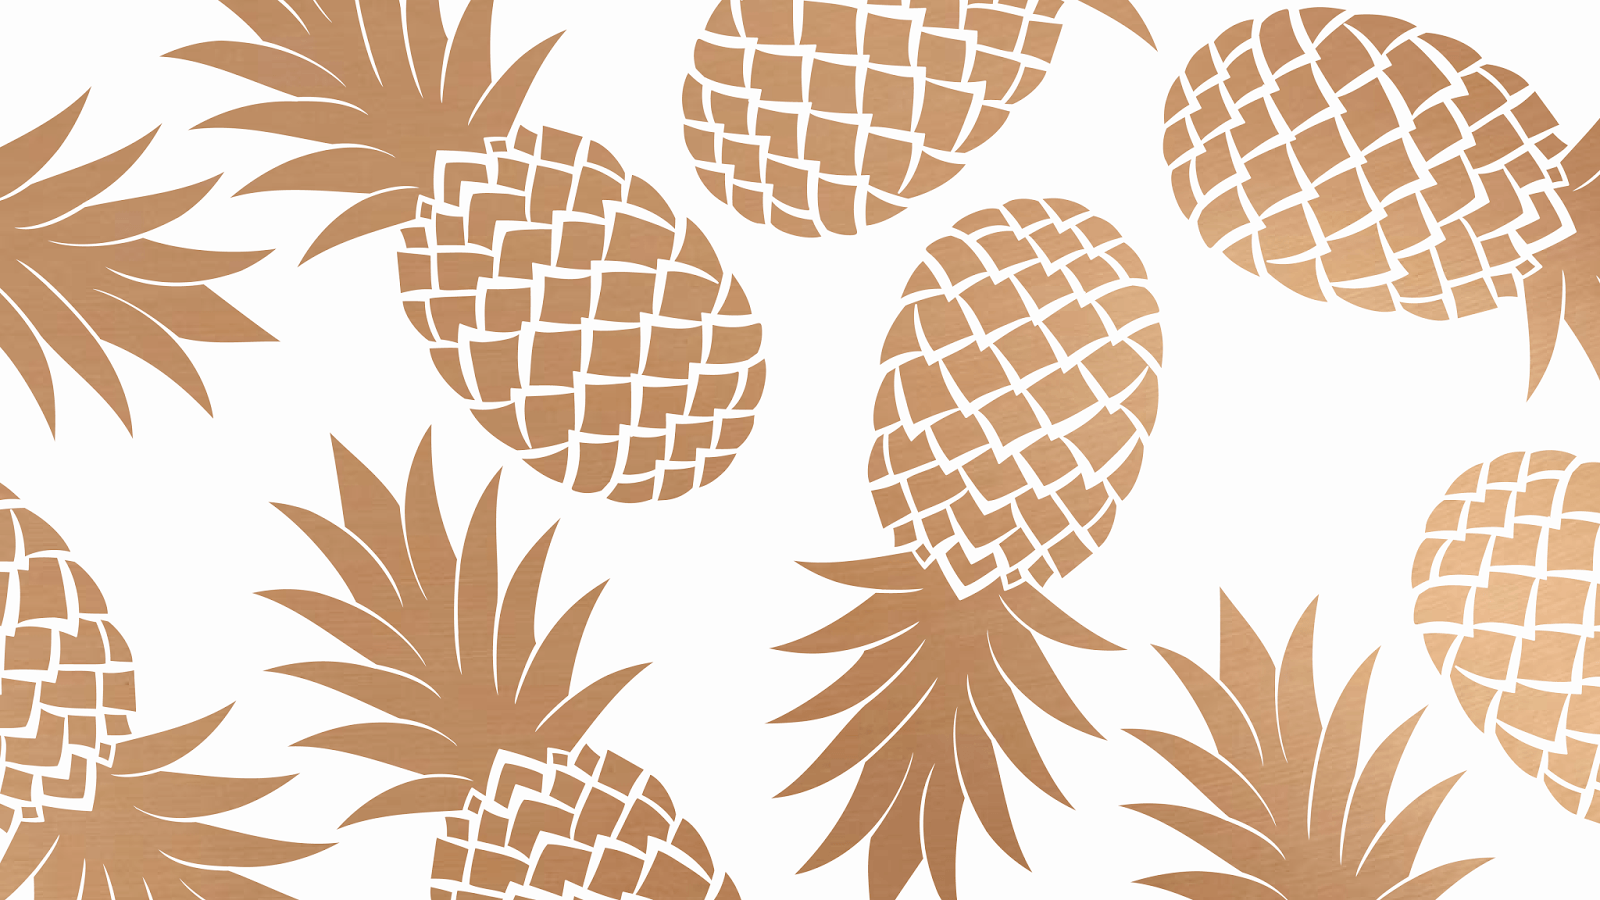 Rose Gold Pineapple Wallpapers Top Free Rose Gold Pineapple Backgrounds Wallpaperaccess